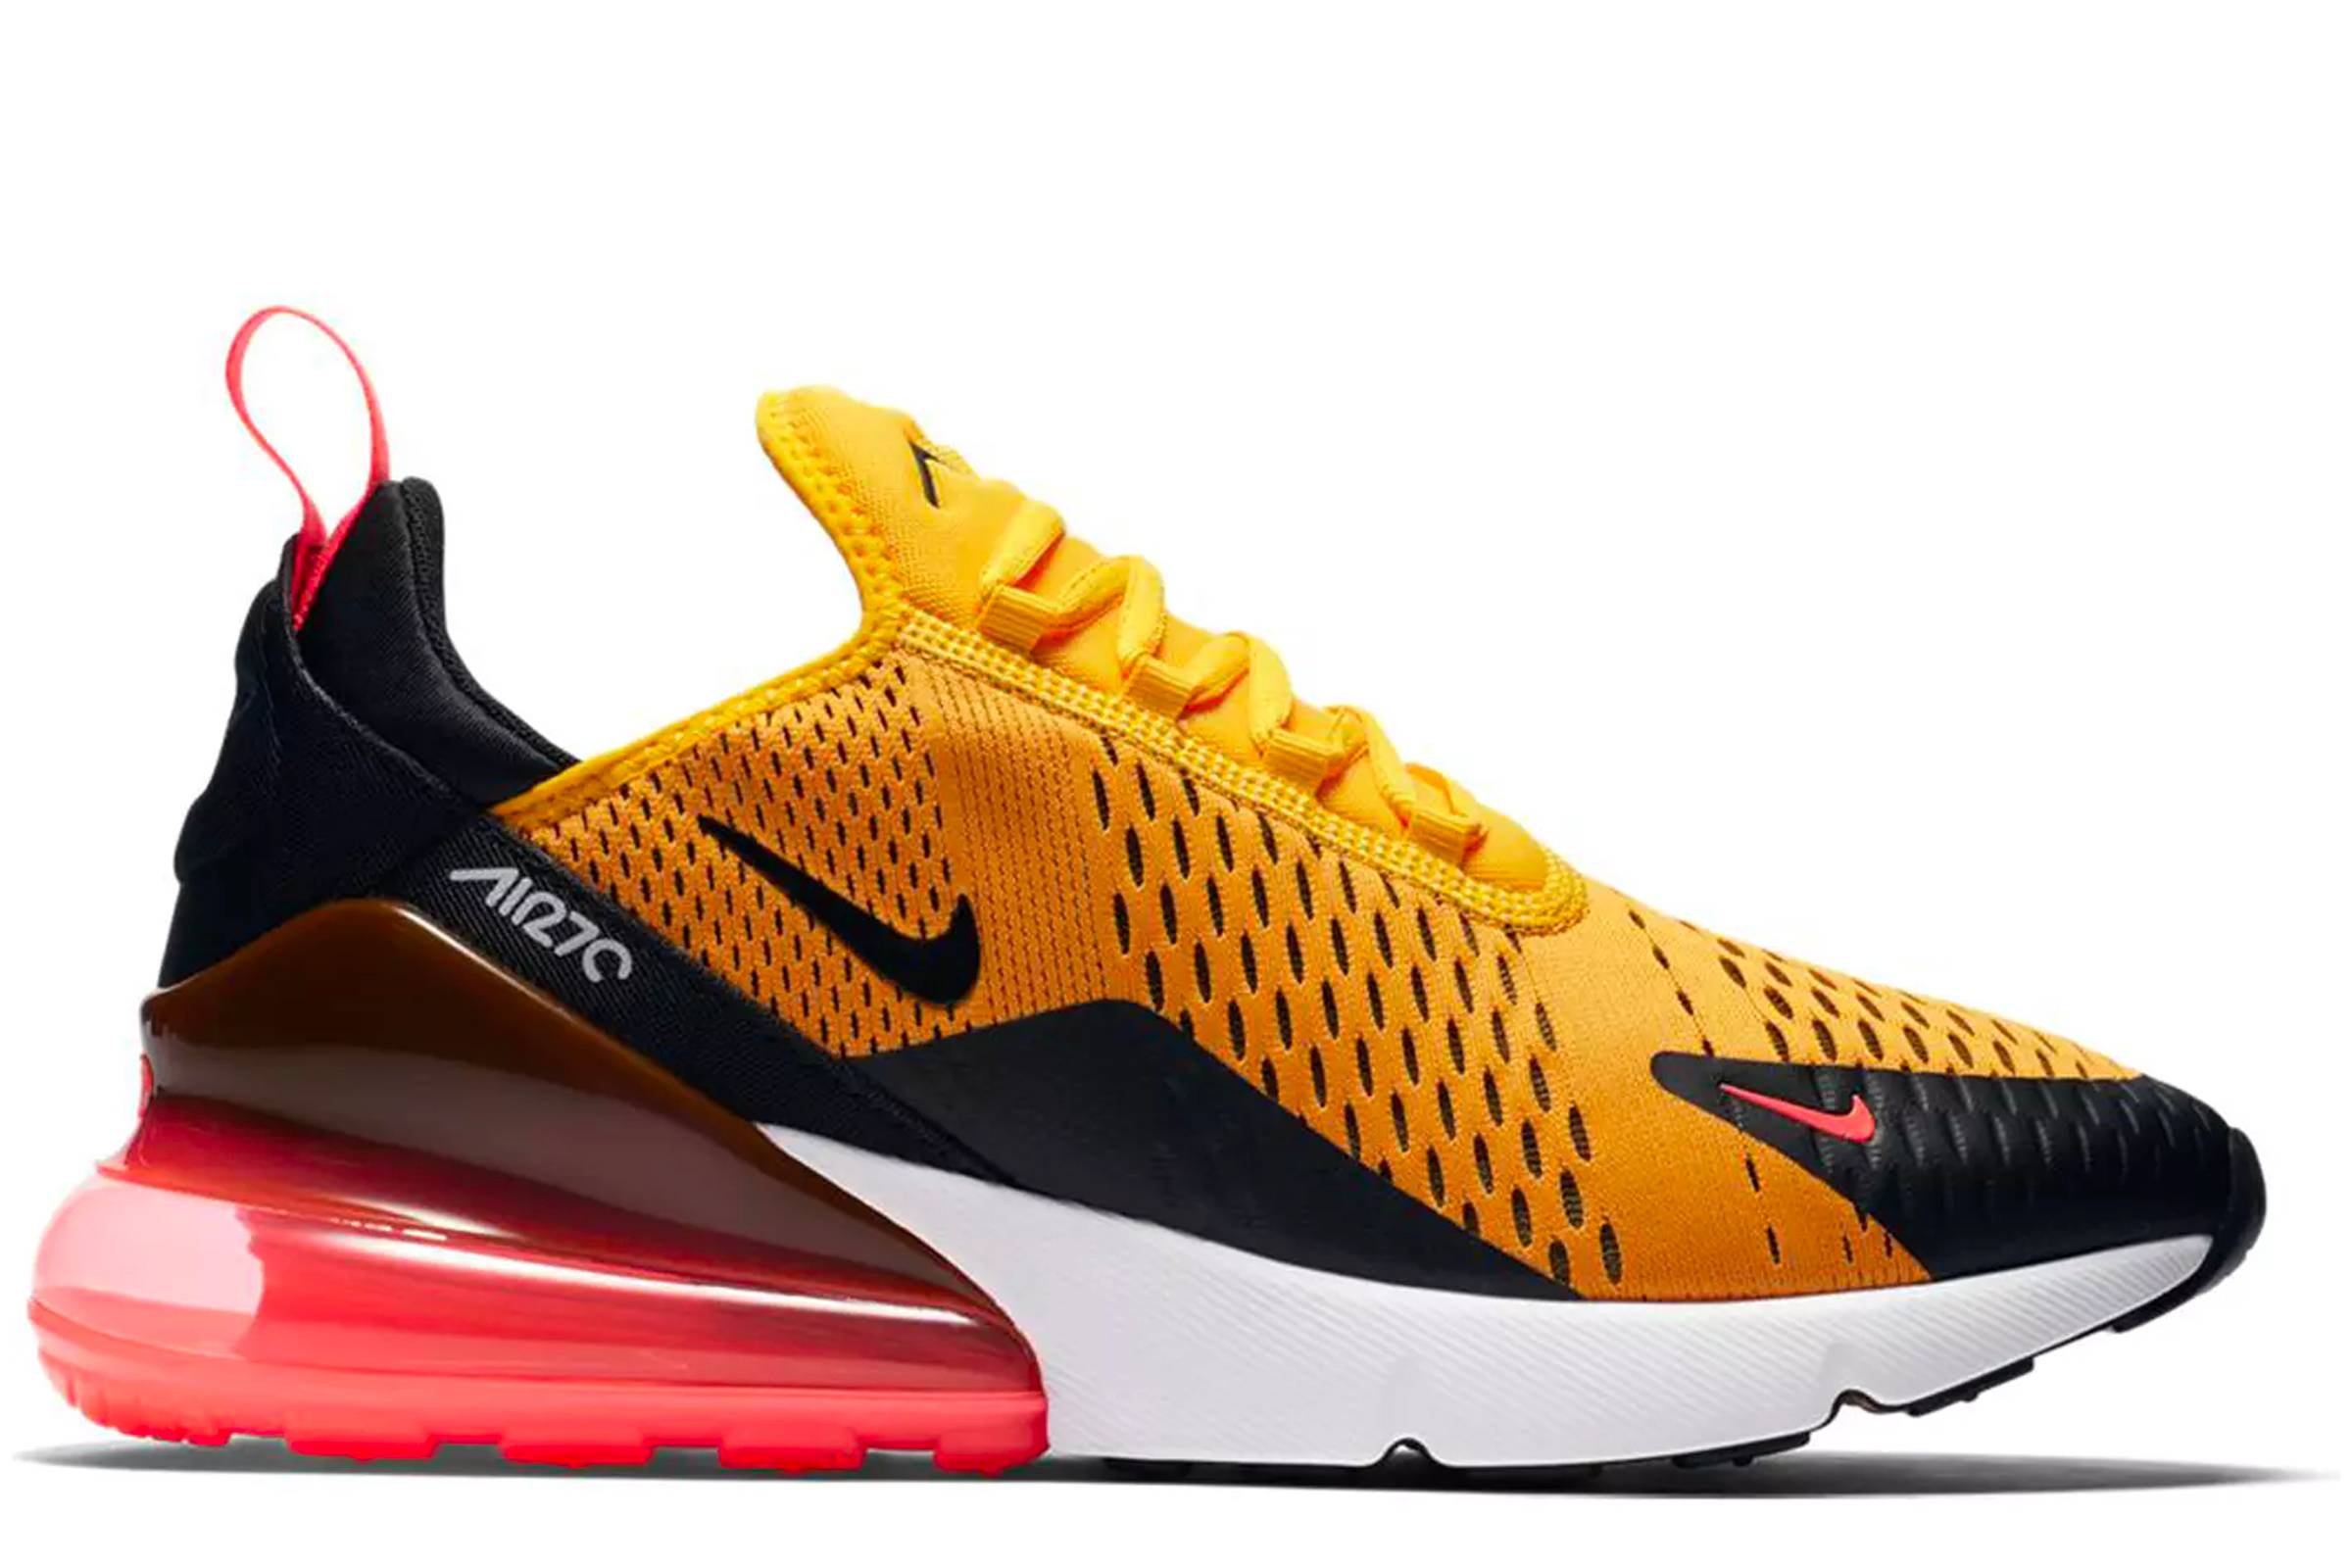 3dc5ead24a Air Max 270 University Gold (which premiered on Astrid Andersen's  Fall/Winter 2018 show)